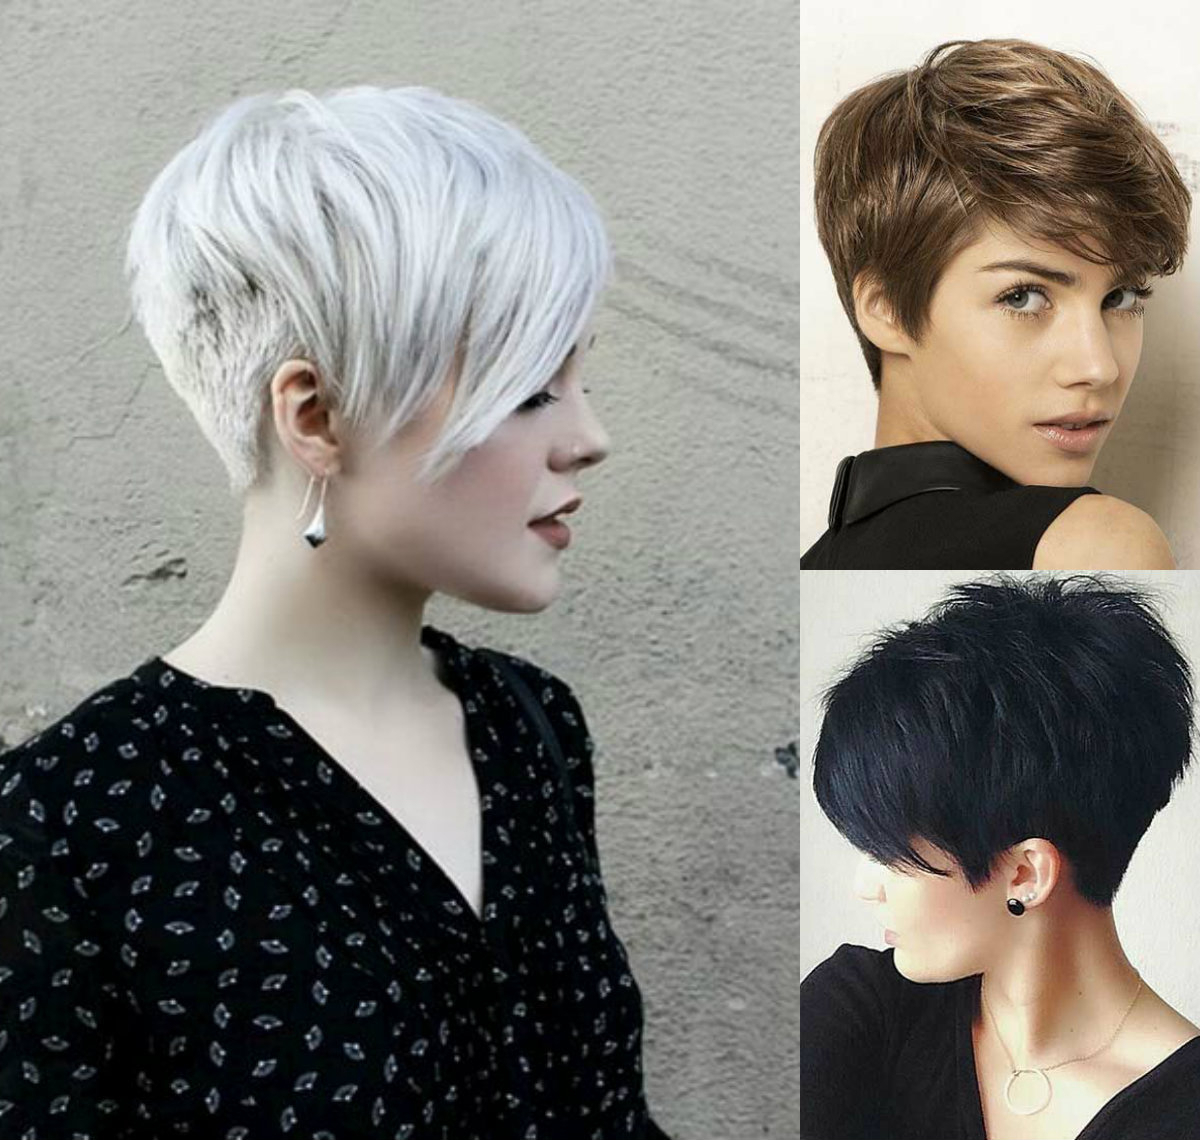 Vibrant Layered Pixie Haircuts 2017 | Hairdrome Regarding Textured Pixie Hairstyles With Highlights (Gallery 3 of 20)